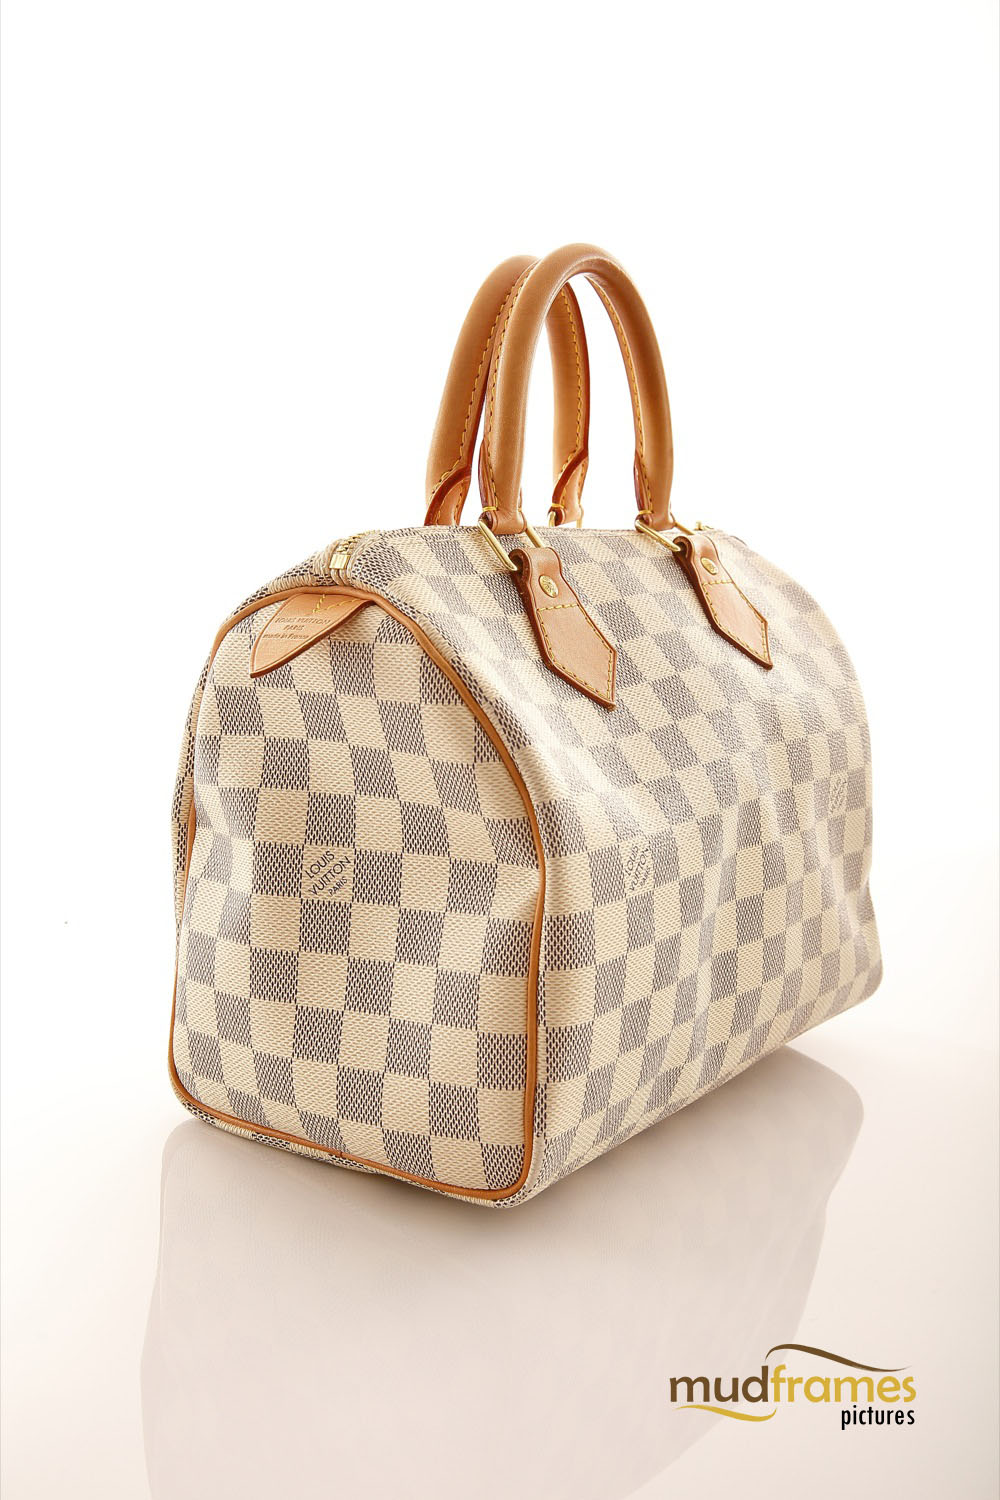 Louis Vuitton bag on white background